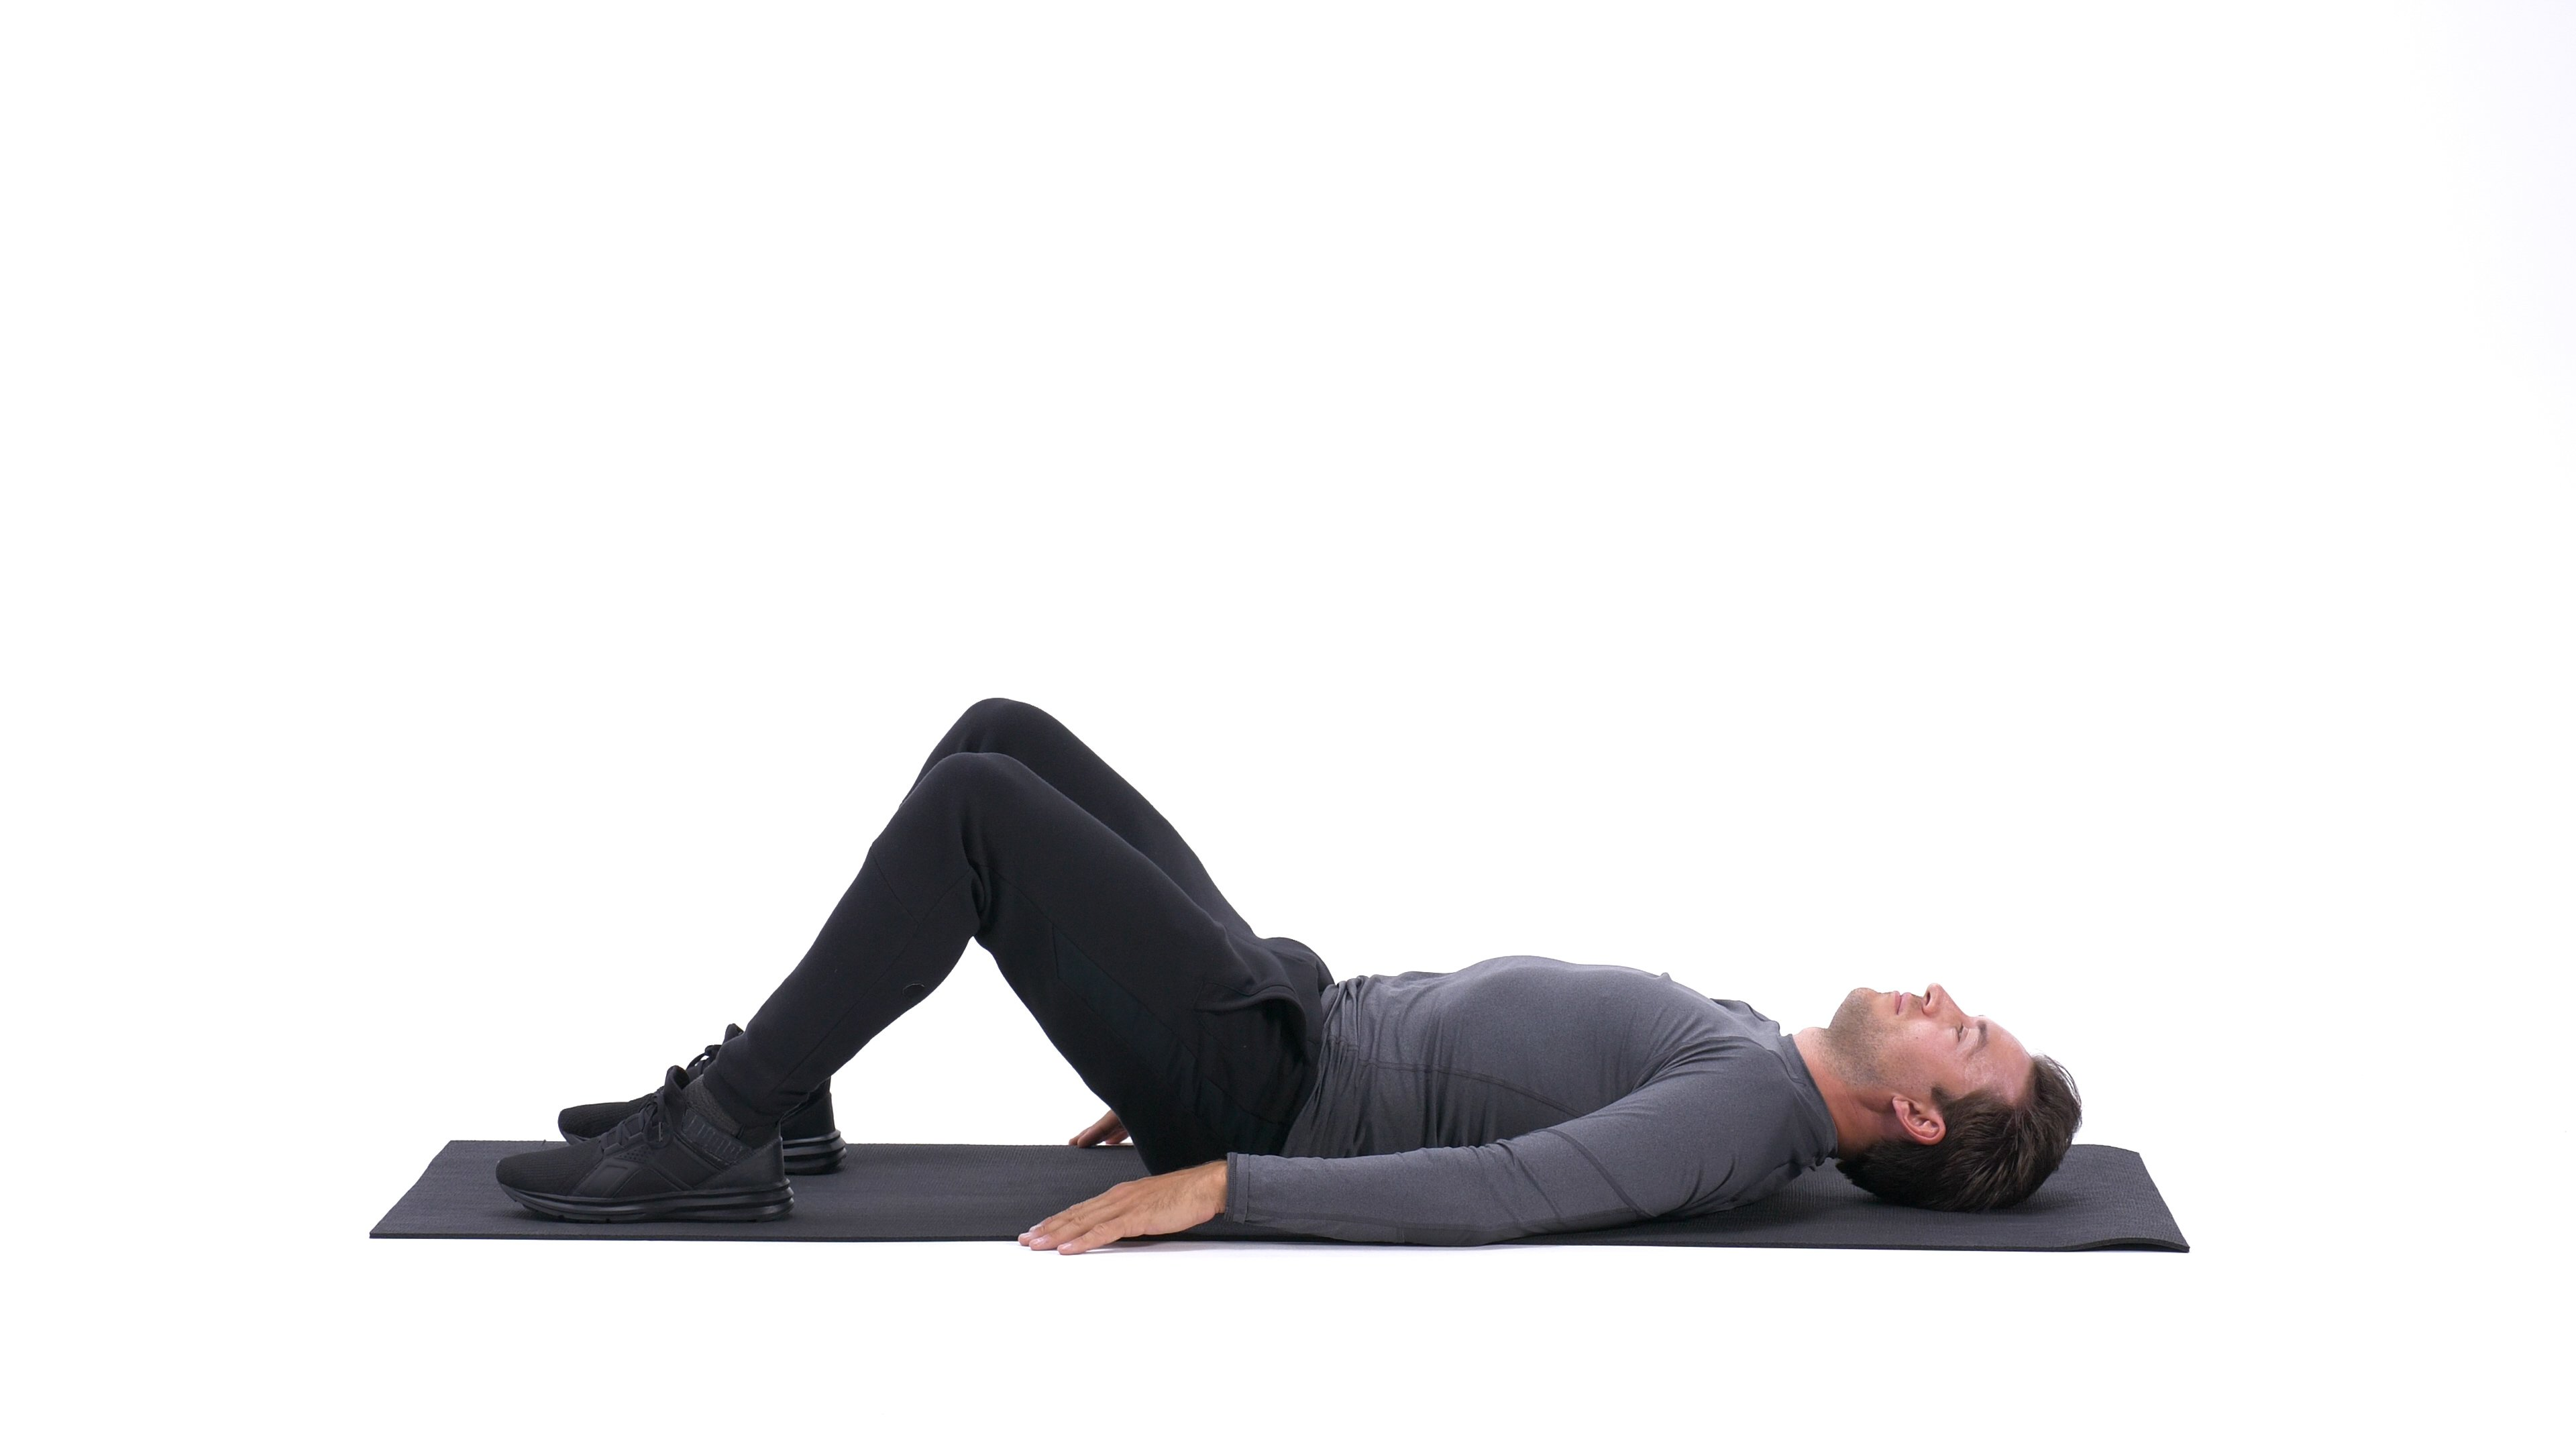 Sit-up image